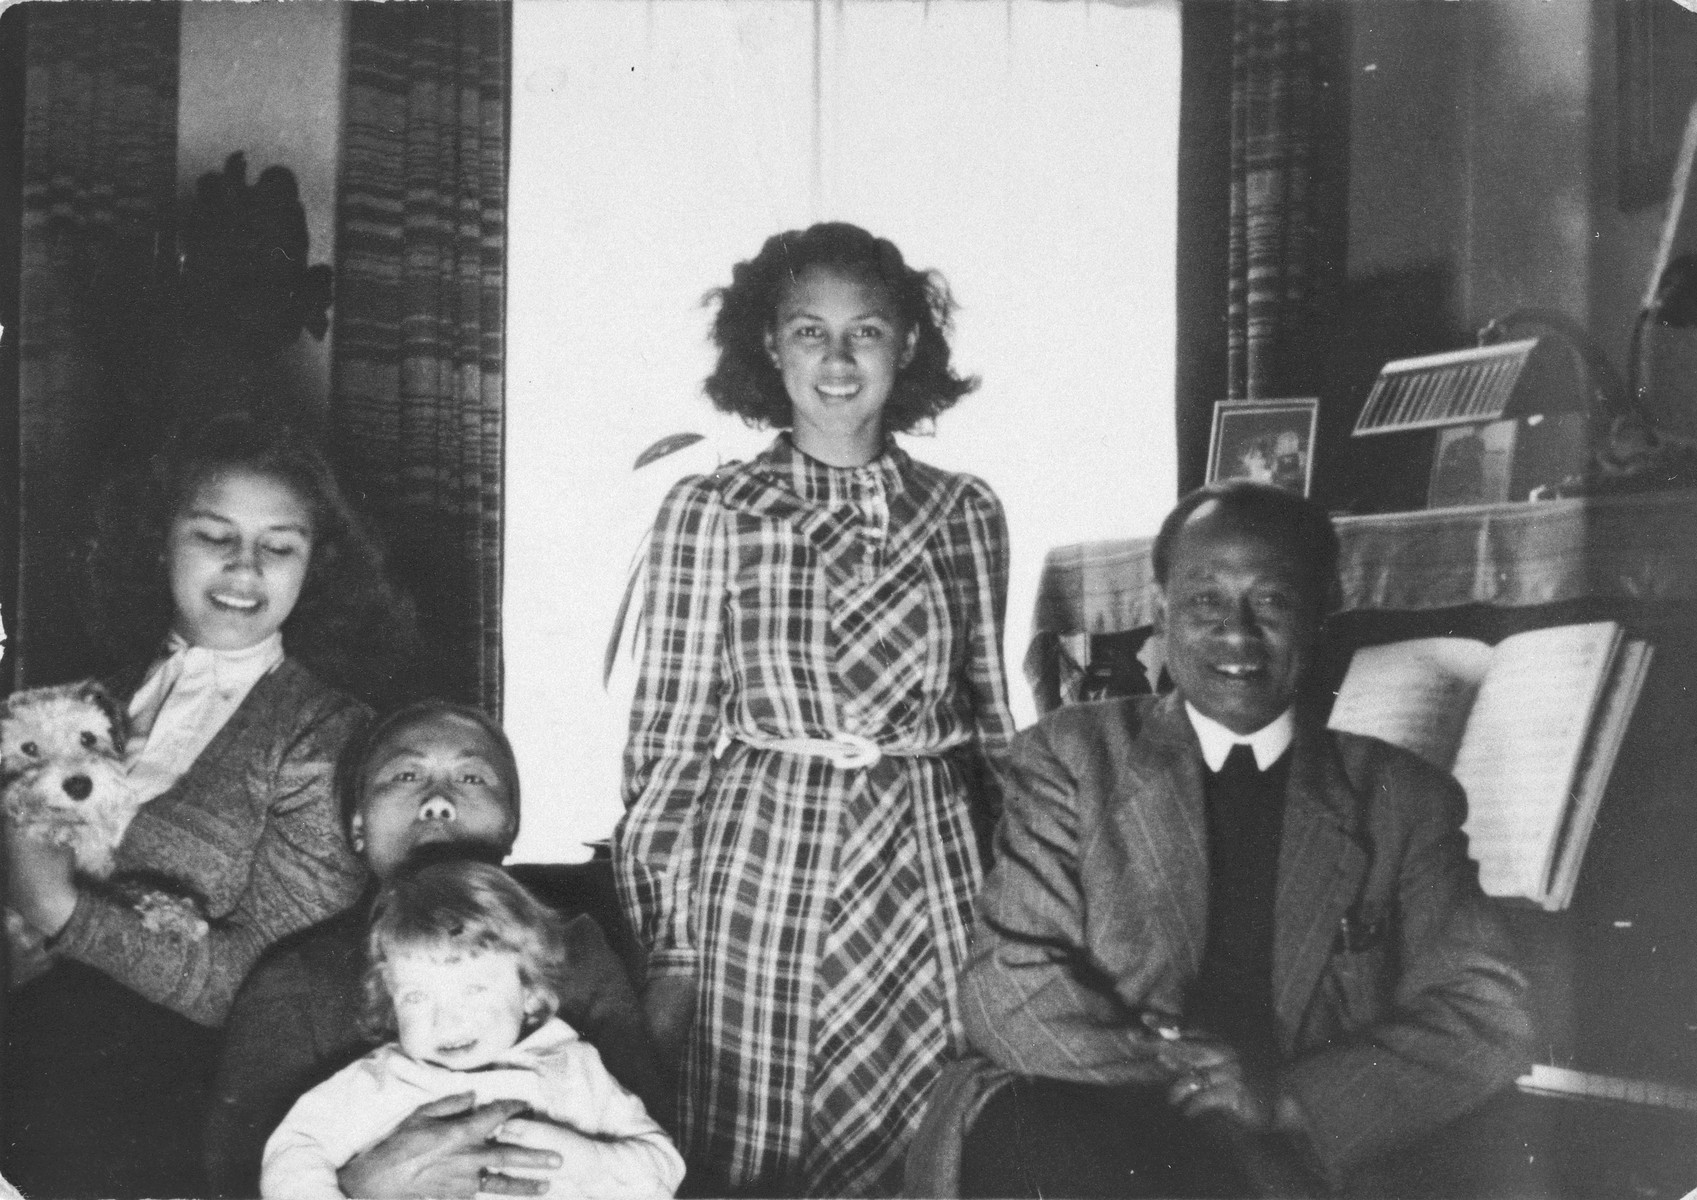 Members of the Madna household pose with the Jewish child they are hiding in their home in The Hague.  Pictured clockwise from the bottom left are: Alfred Münzer (child), Mima Saïna (nanny), Willie Madna (daughter of rescuer, Tolé Madna), Dewie Madna (daughter of Tolé Madna) and Tolé Madna.